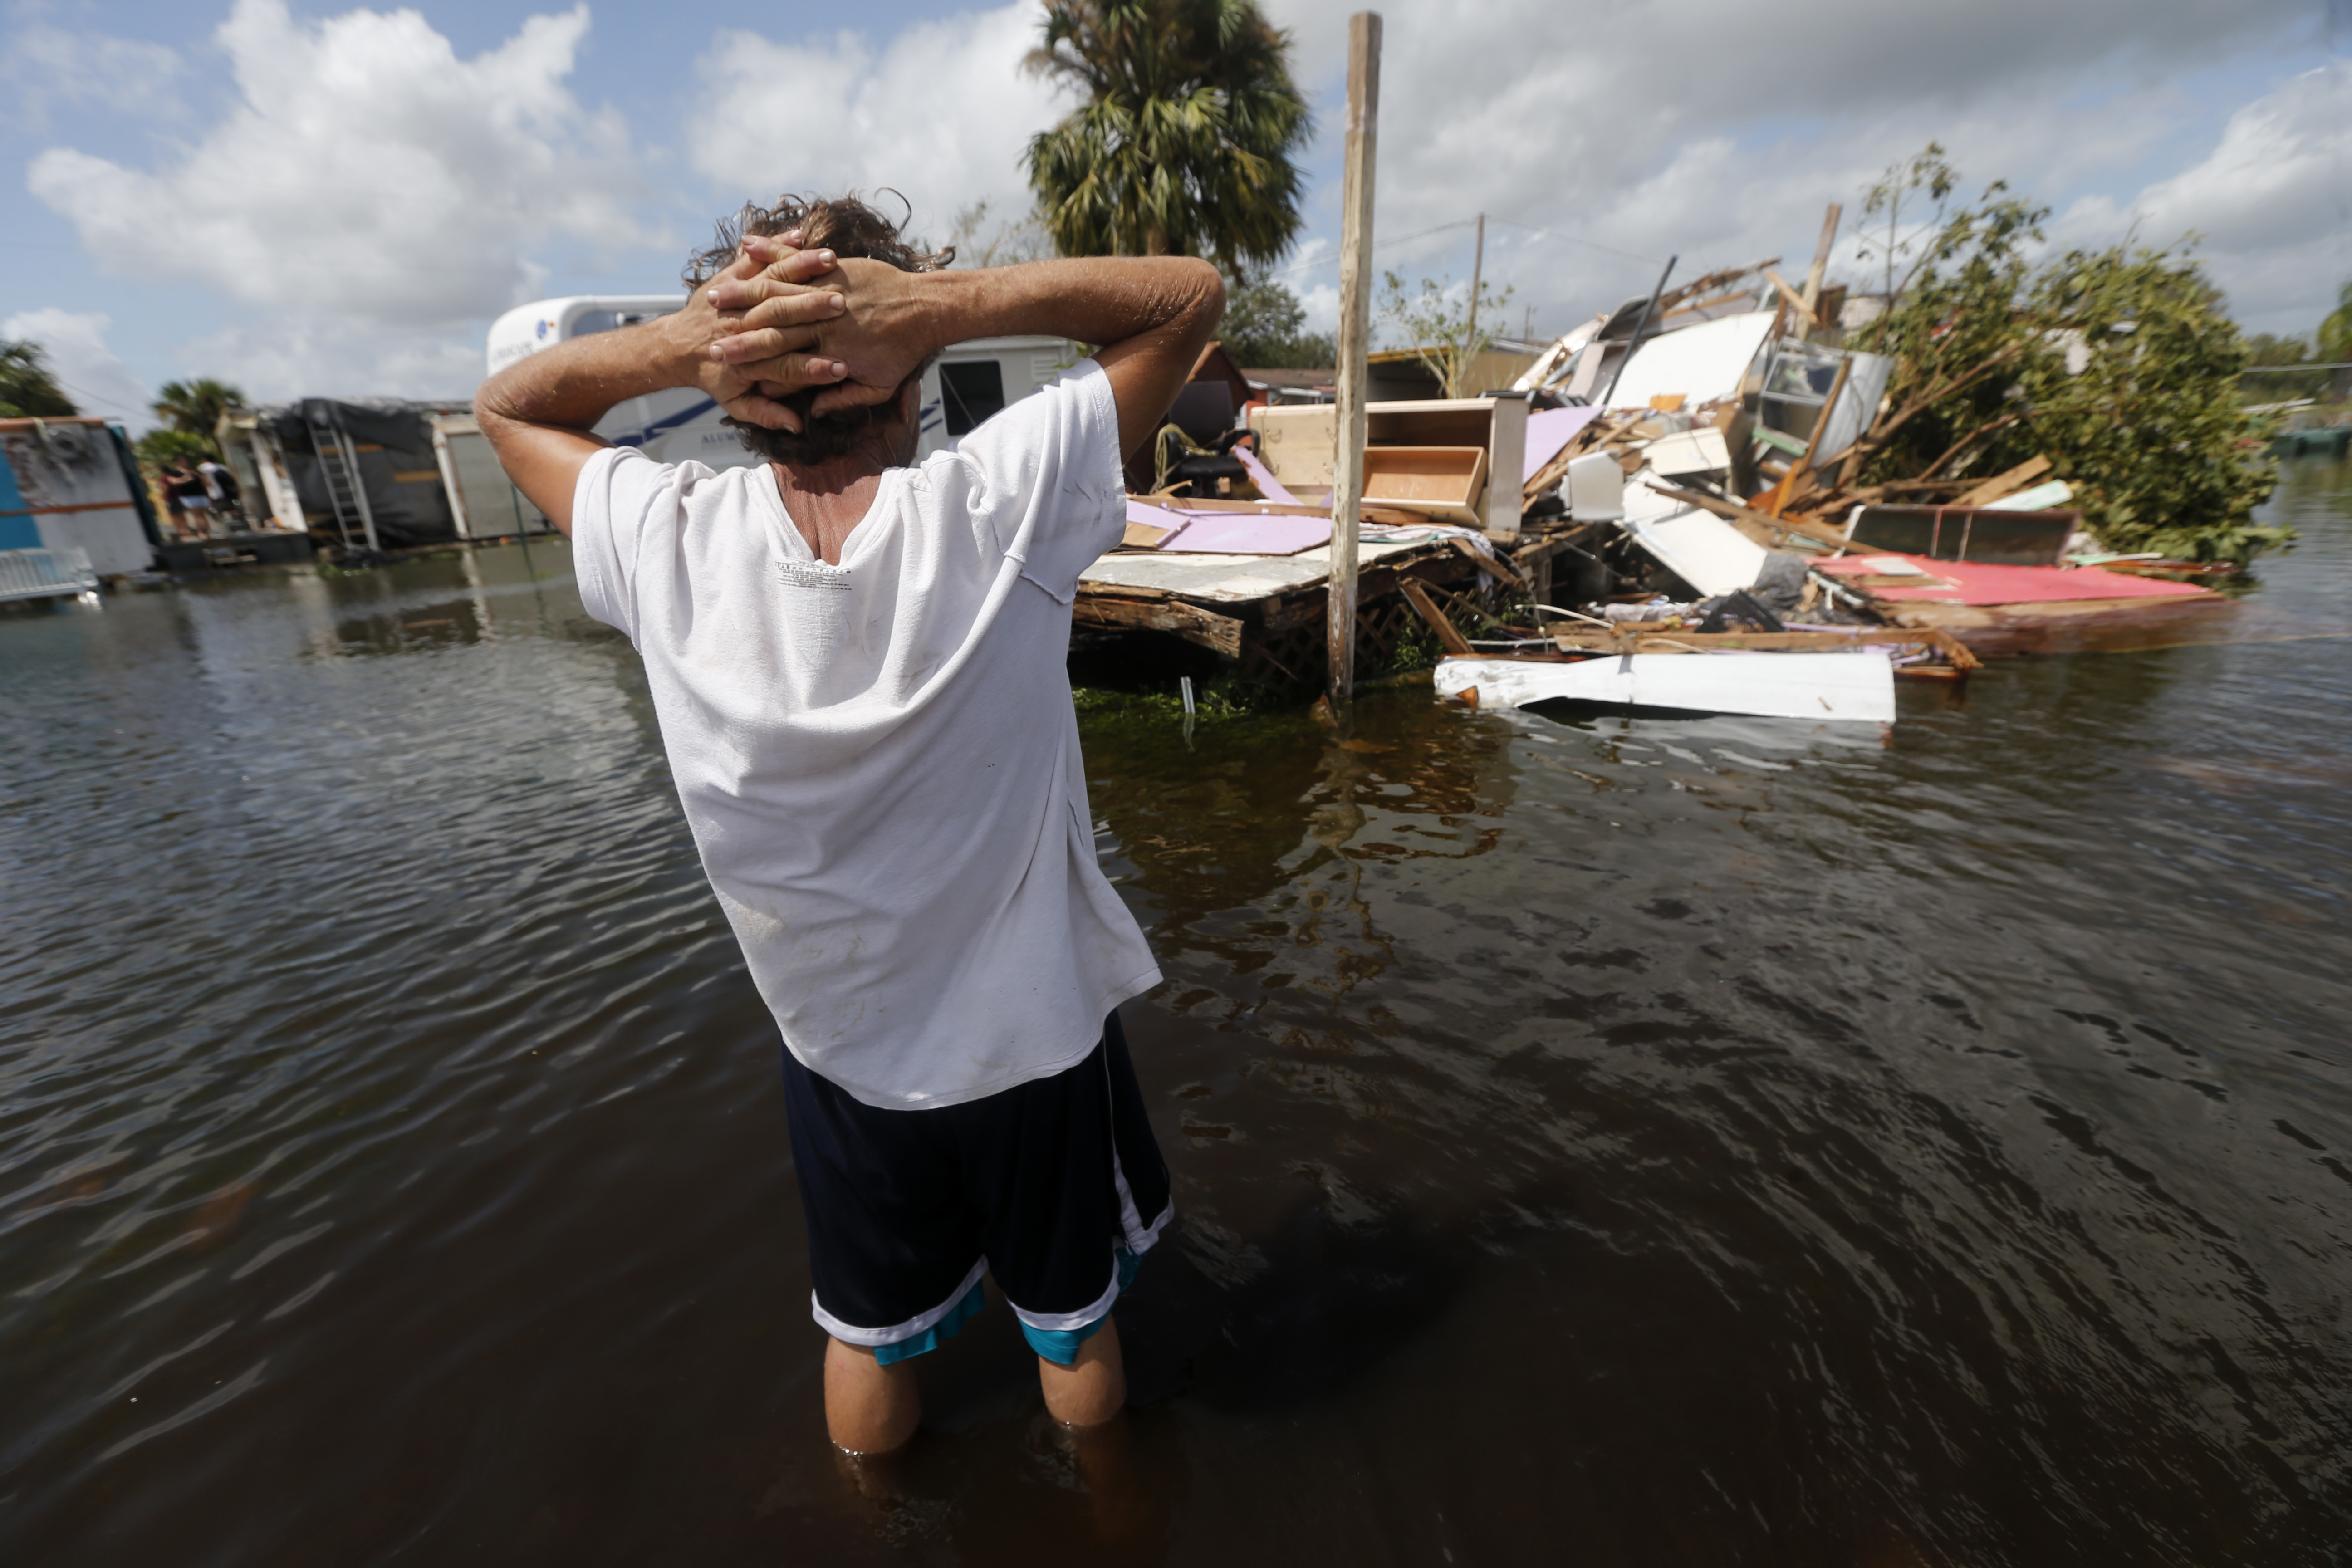 Irma The Poor-4 In this Sept. 11, 2017 photo, Larry Dimas walk around his destroyed trailer in Immokalee, Fla. Irma badly damaged Dimas' mobile home and destroyed another he used for rental income, making his tough life even harder. (AP Photo/Gerald Herbert)